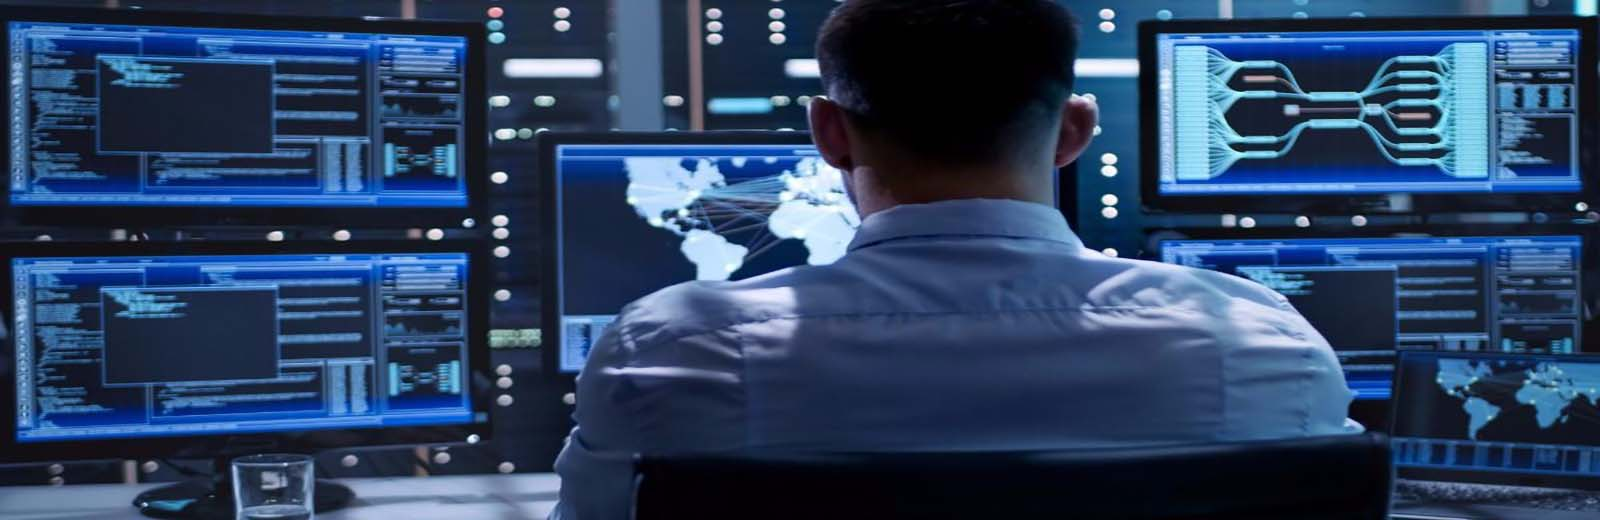 Cyber-Security-Electric-City-Web-Company